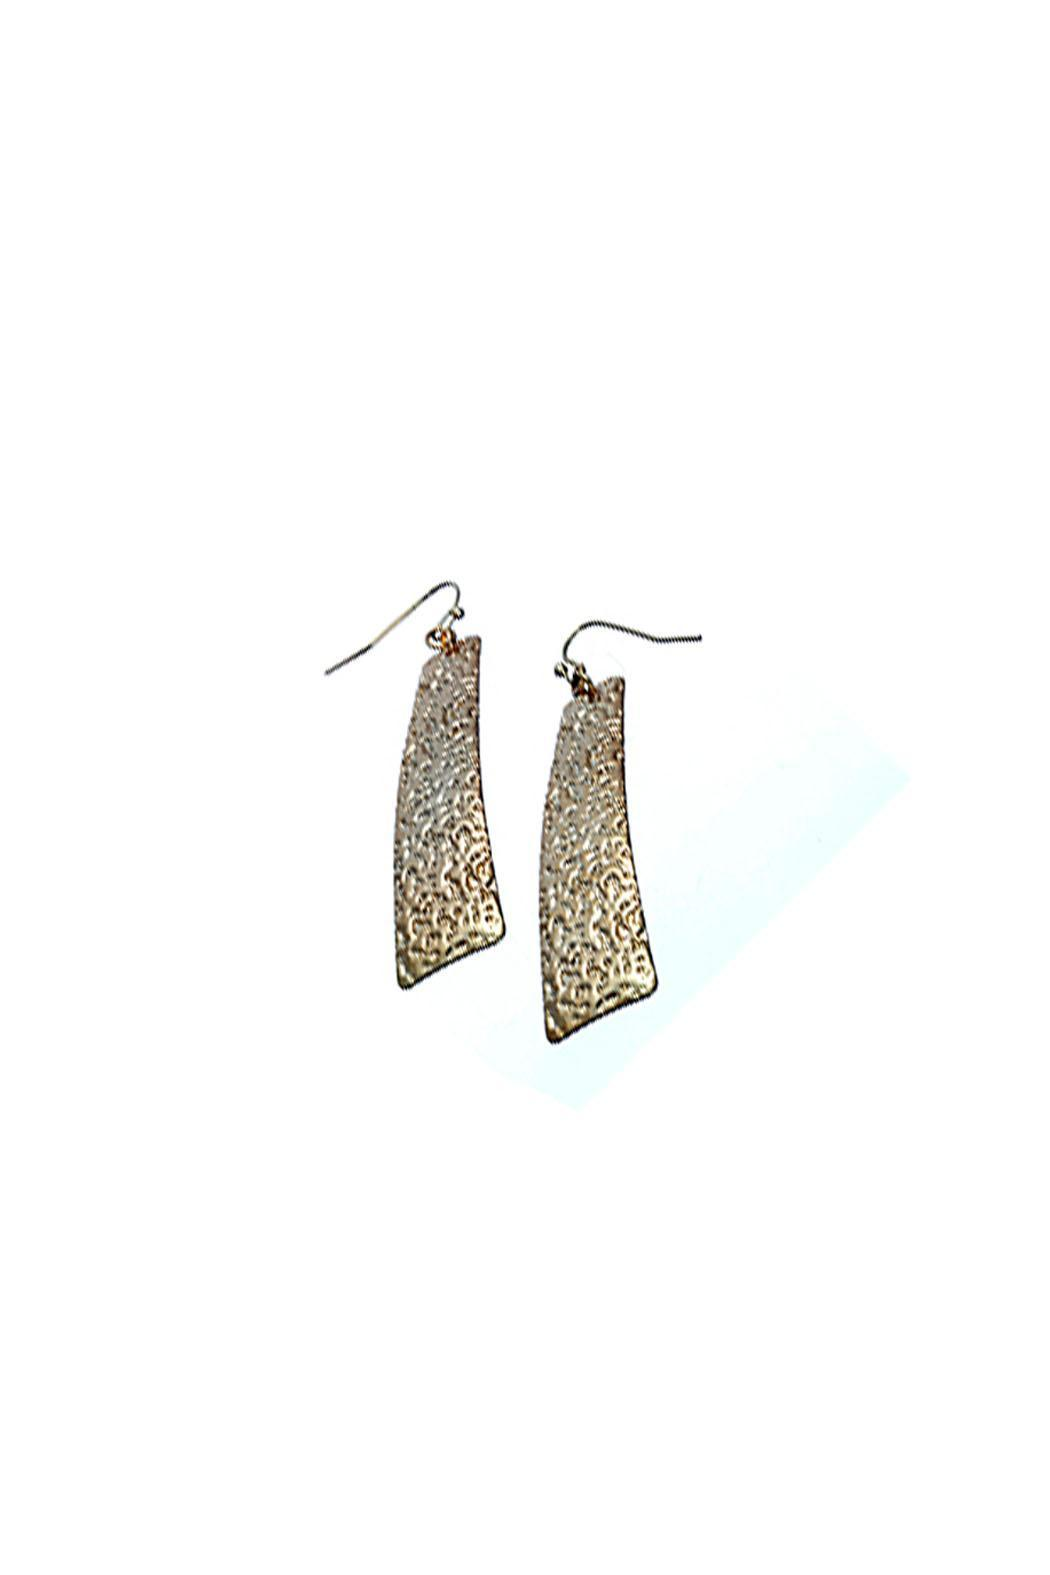 Wild Lilies Jewelry  Veritcal Bar Earrings - Main Image